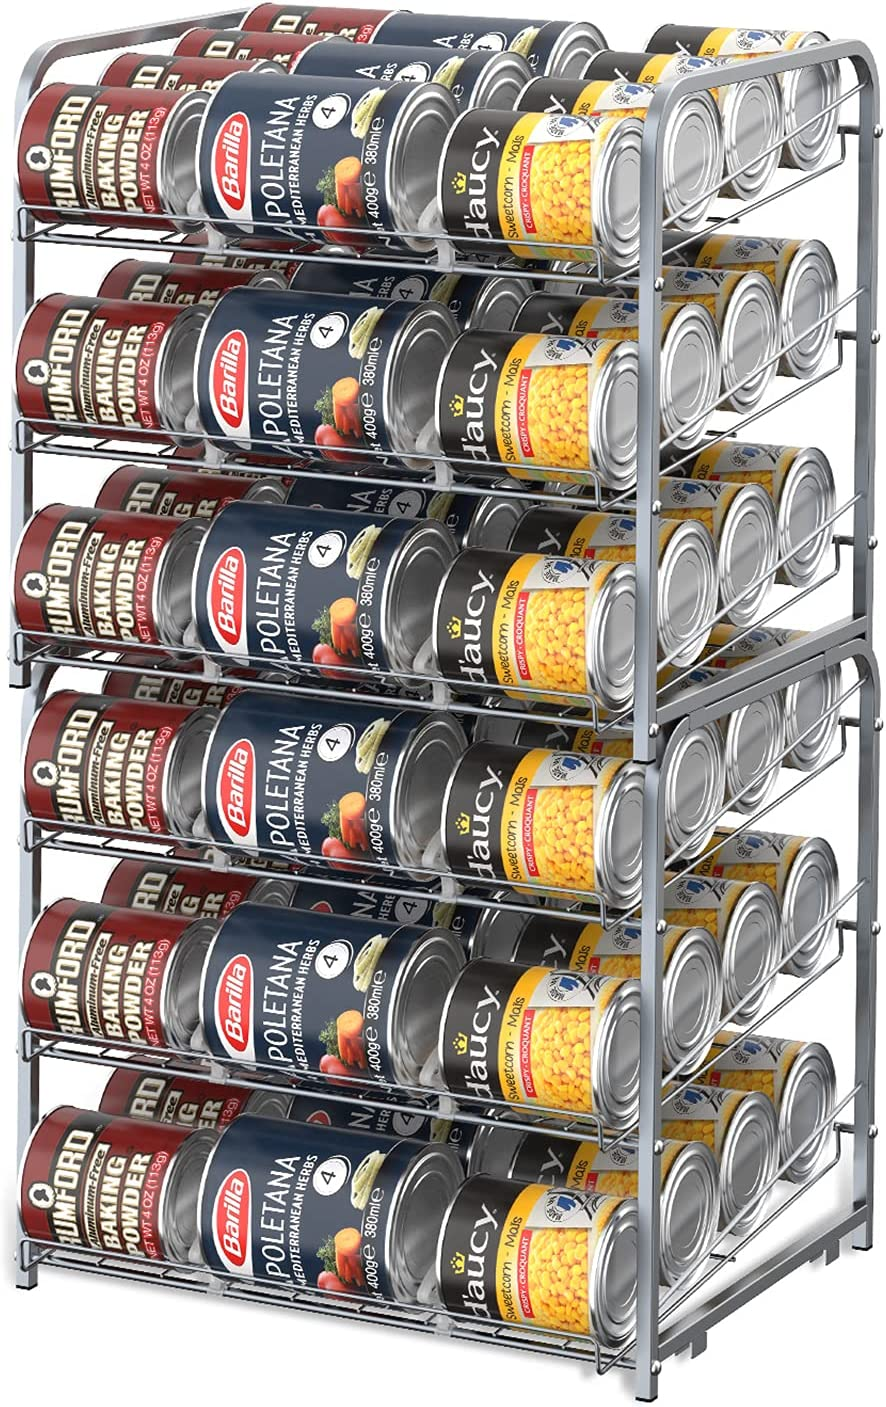 HAITRAL 2 Pack Can Super sale Rack Storage 3 Tier Stackable Special price for a limited time Organizer